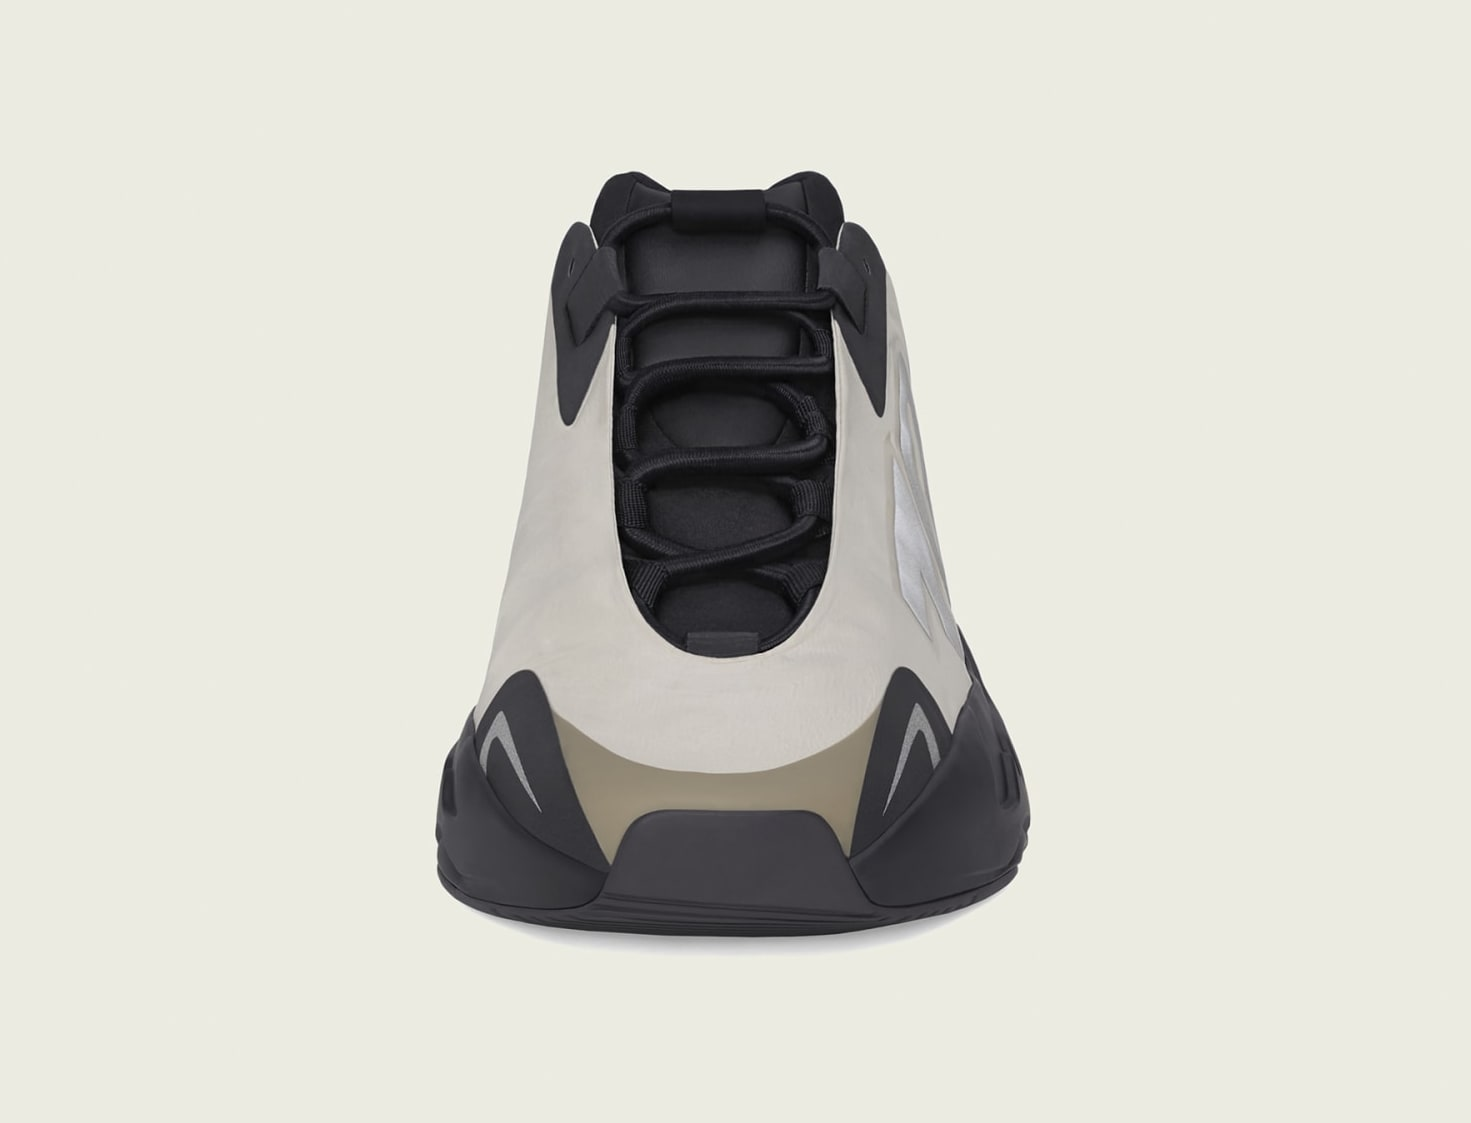 Adidas Yeezy Boost 700 MNVN 'Bone' FY3729 Front